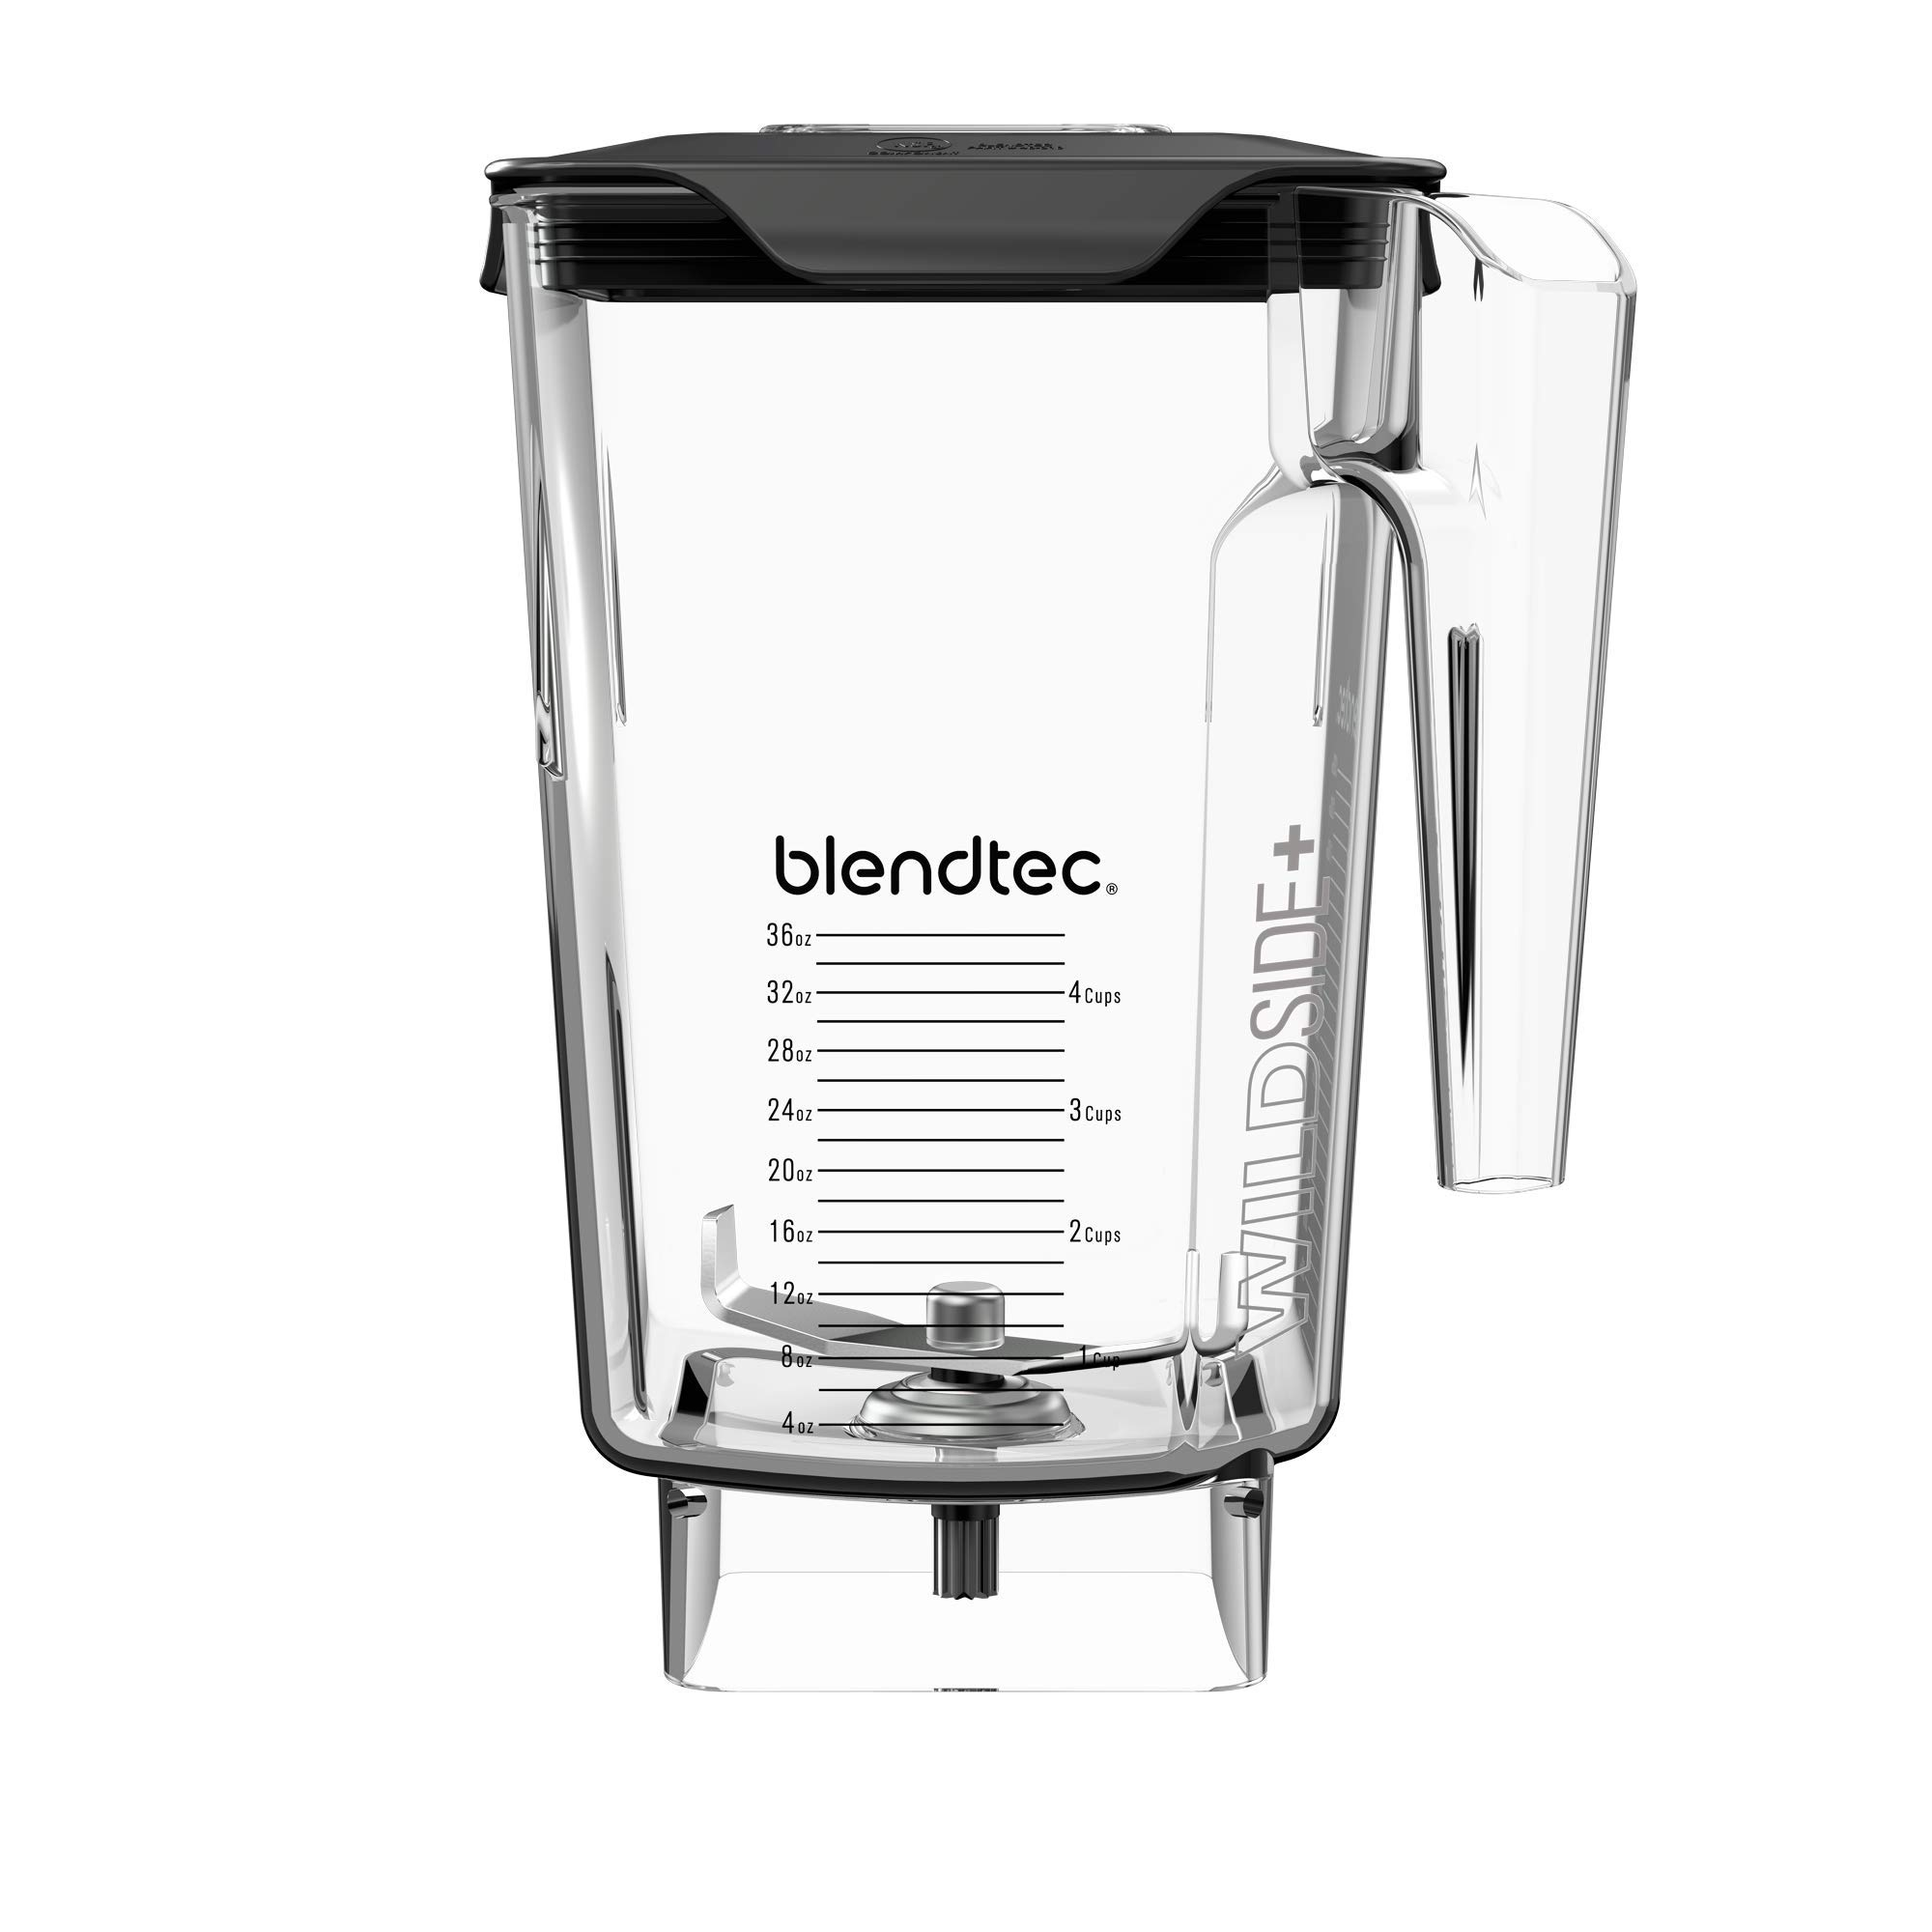 Blendtec WildSide+ 3 Quart Jar (90 oz), Five Sided, Professional/Commercial Grade Blender Jar, Soft Lid, BPA-free, Clear